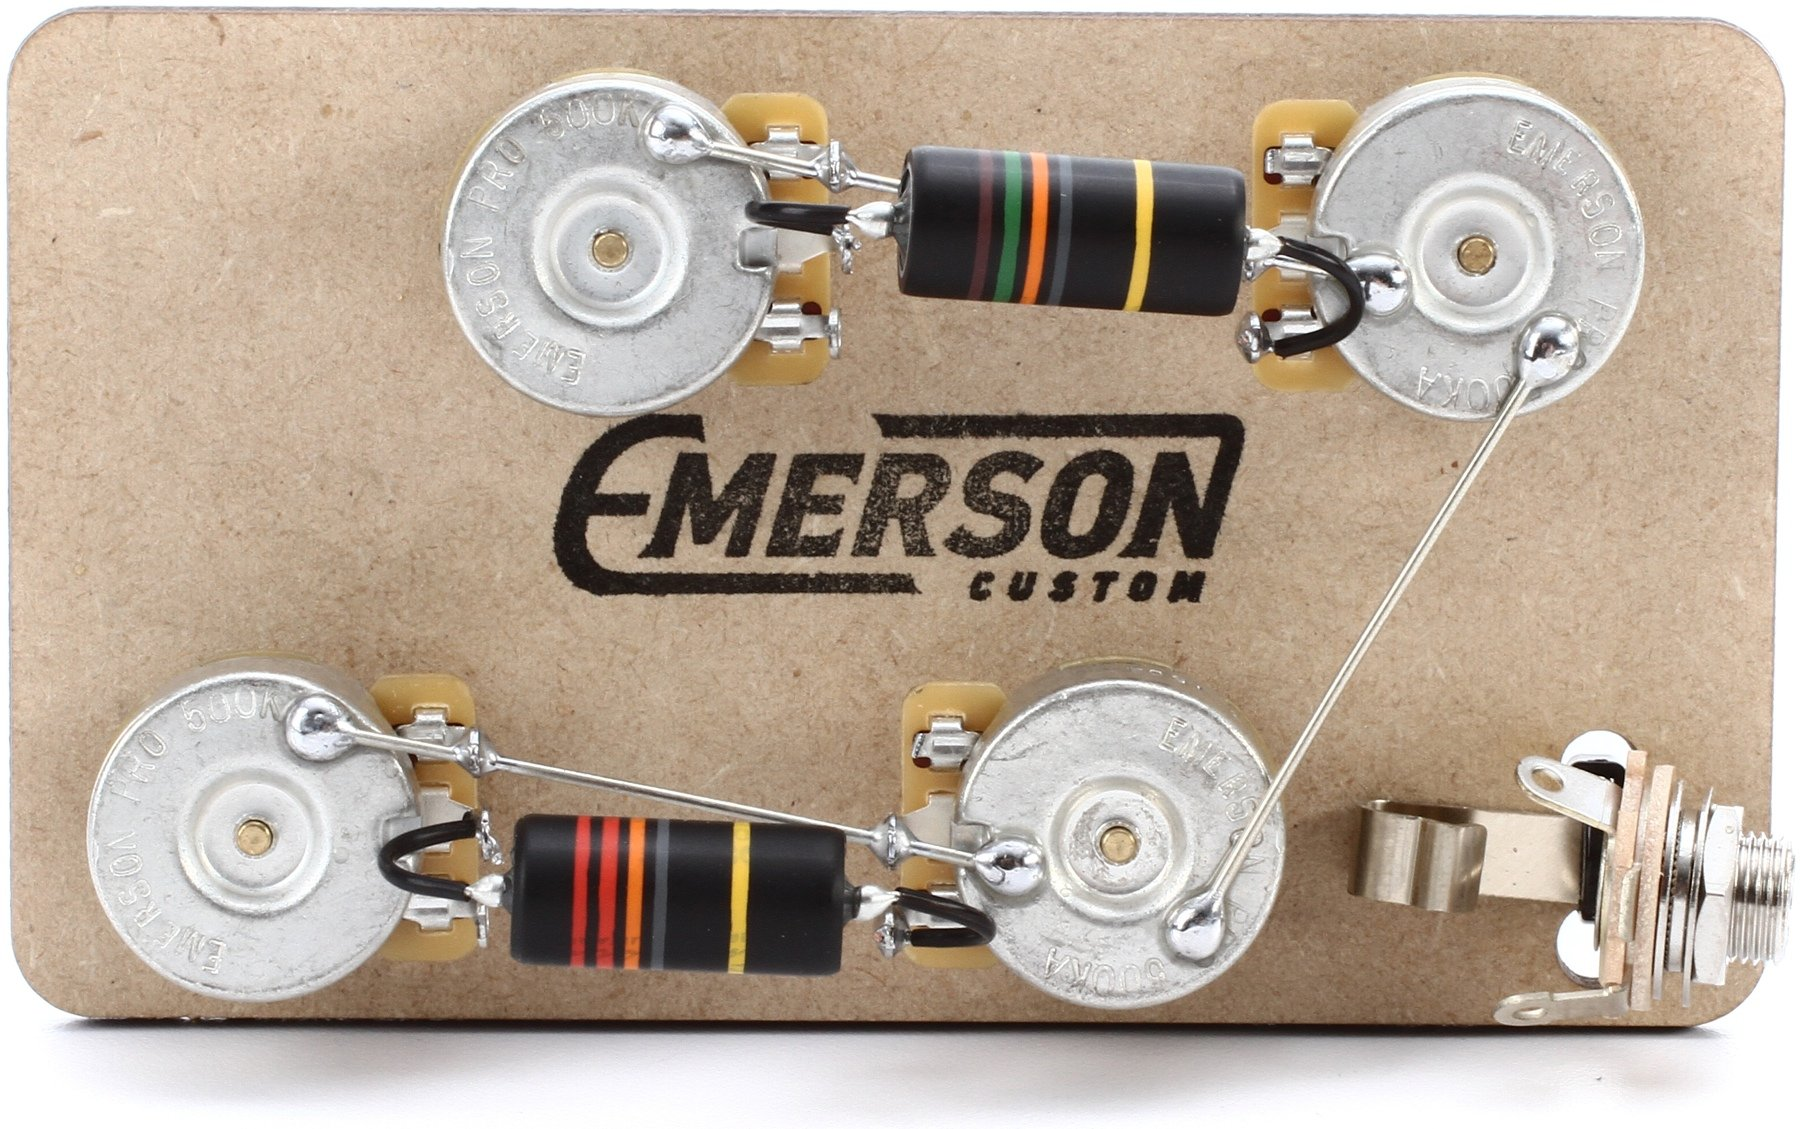 hight resolution of emerson custom prewired kit for gibson les paul guitars long shaft